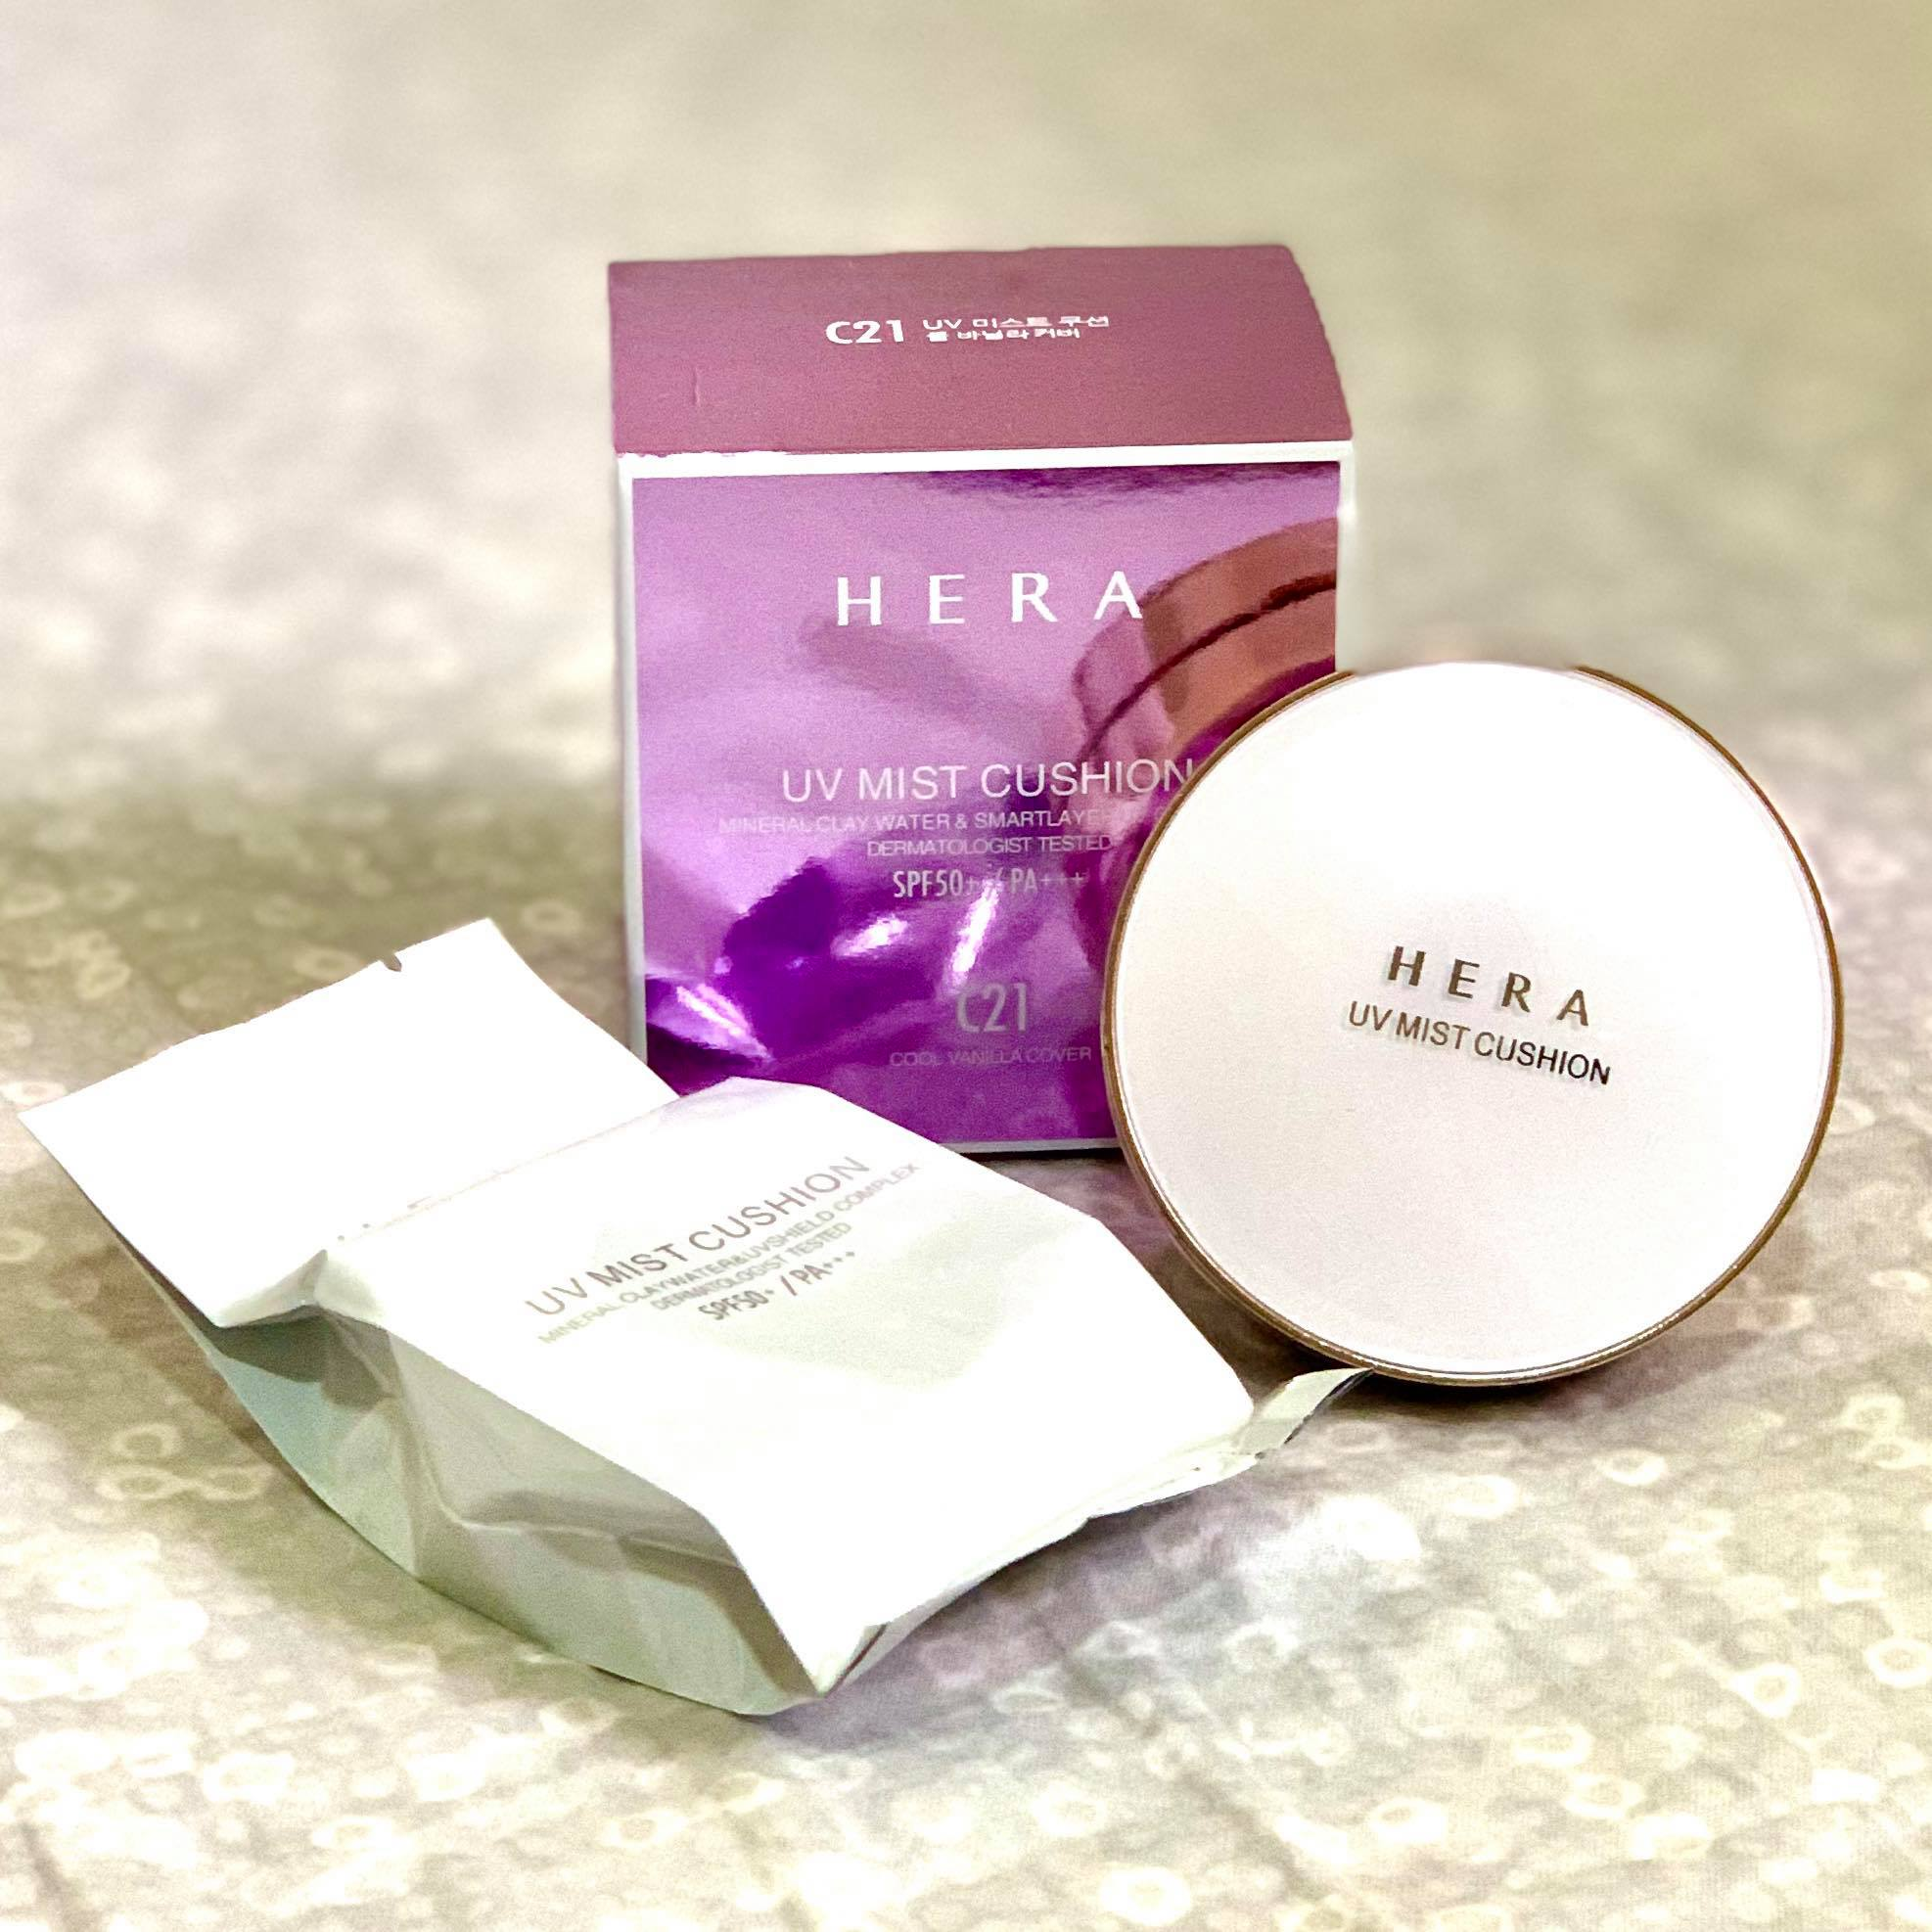 HERA - UV Mist Cushion